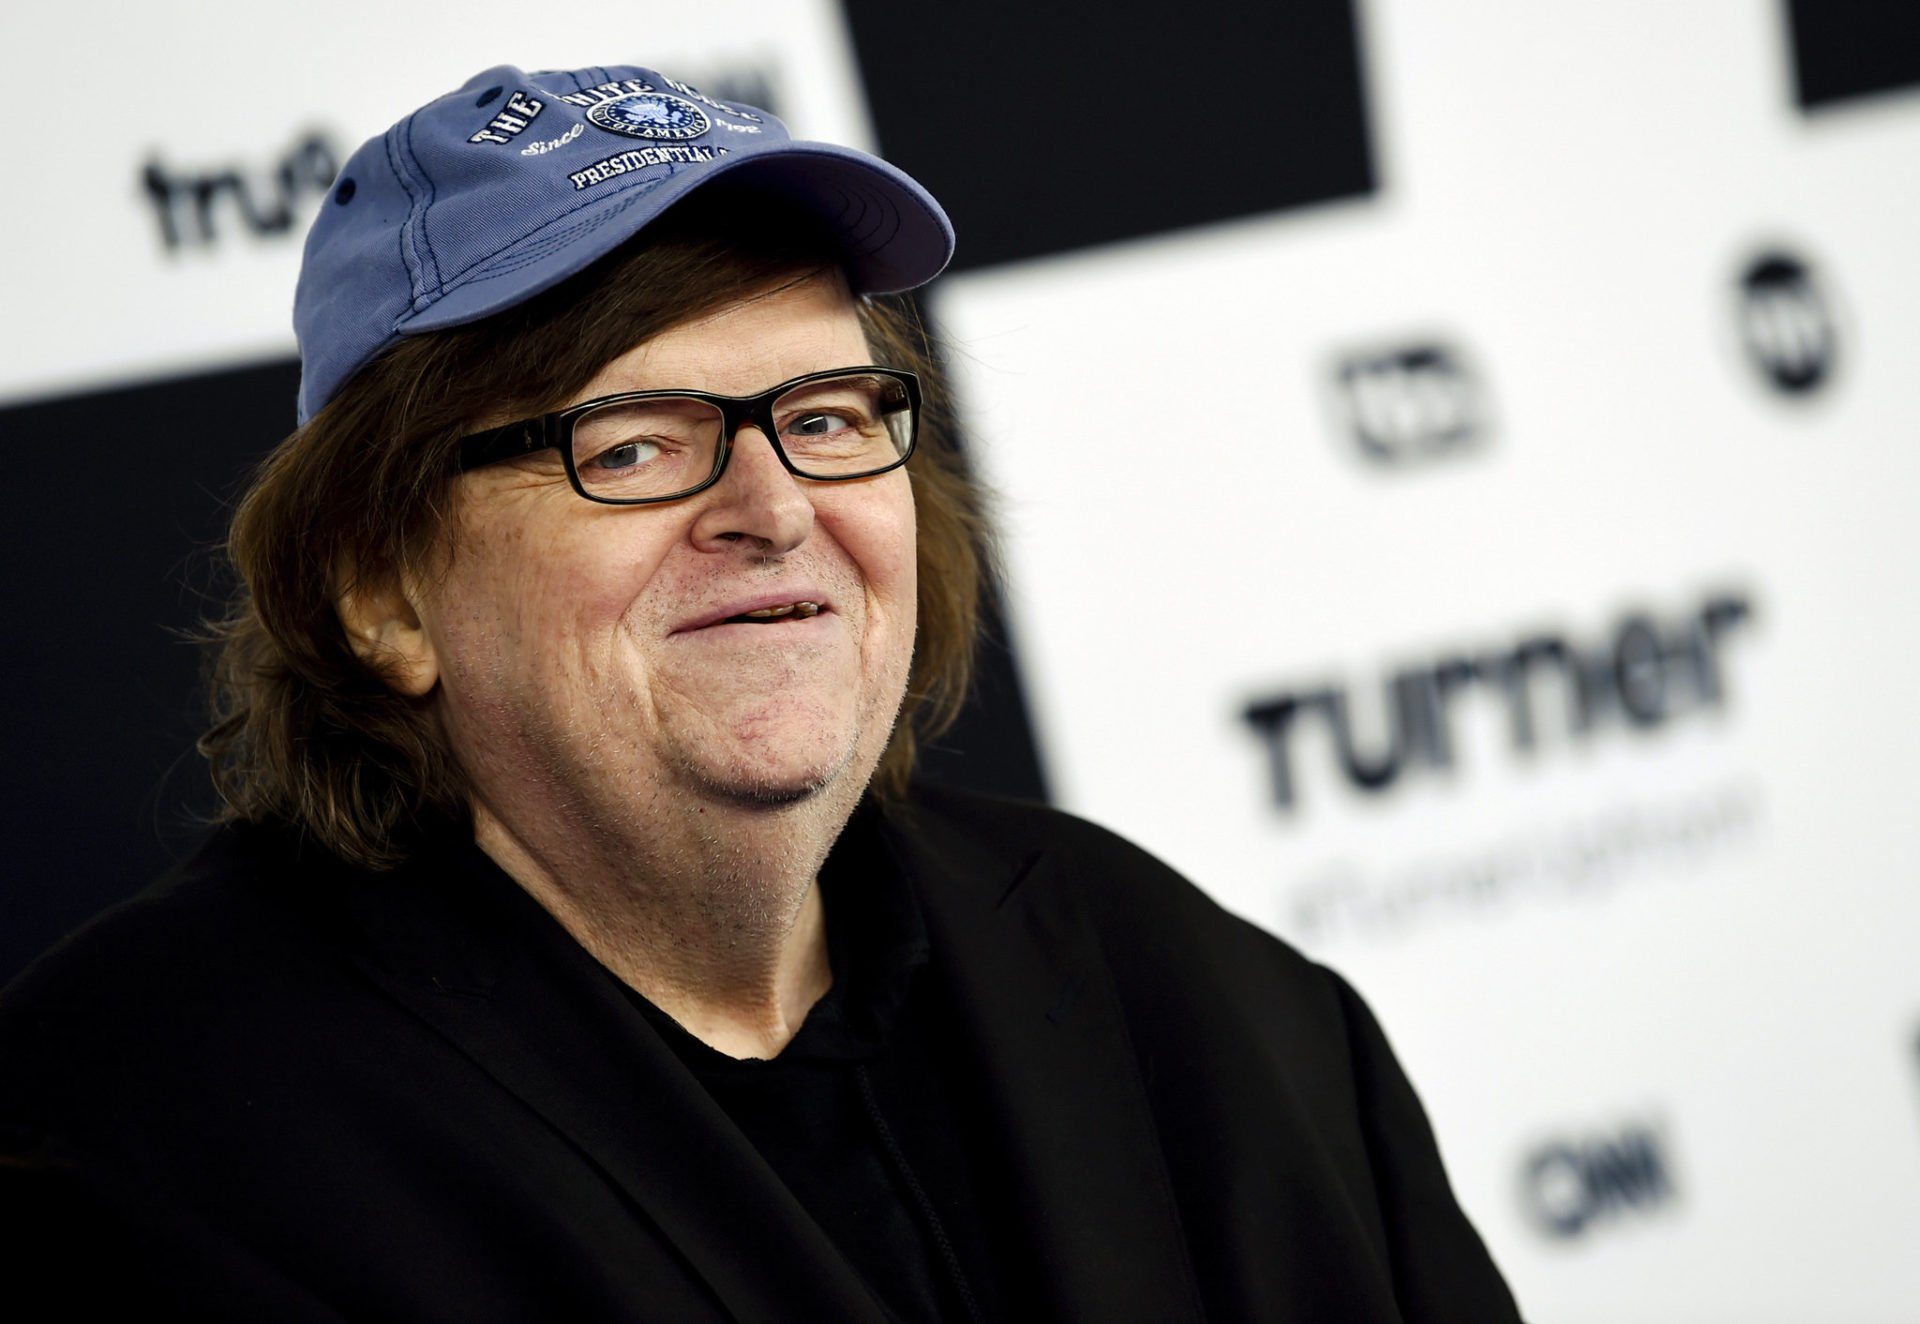 Progressive director Michael Moore participated in an anti-Trump protest in New York that was organized by Russians, according to information released Friday by Deputy Attorney General Rod Rosenstein. Rosenstein announced indictments from Special Counsel Robert Mueller Friday against 13 Russian nationals for meddling in the 2016 election, highlighting how the Russians used social media to …